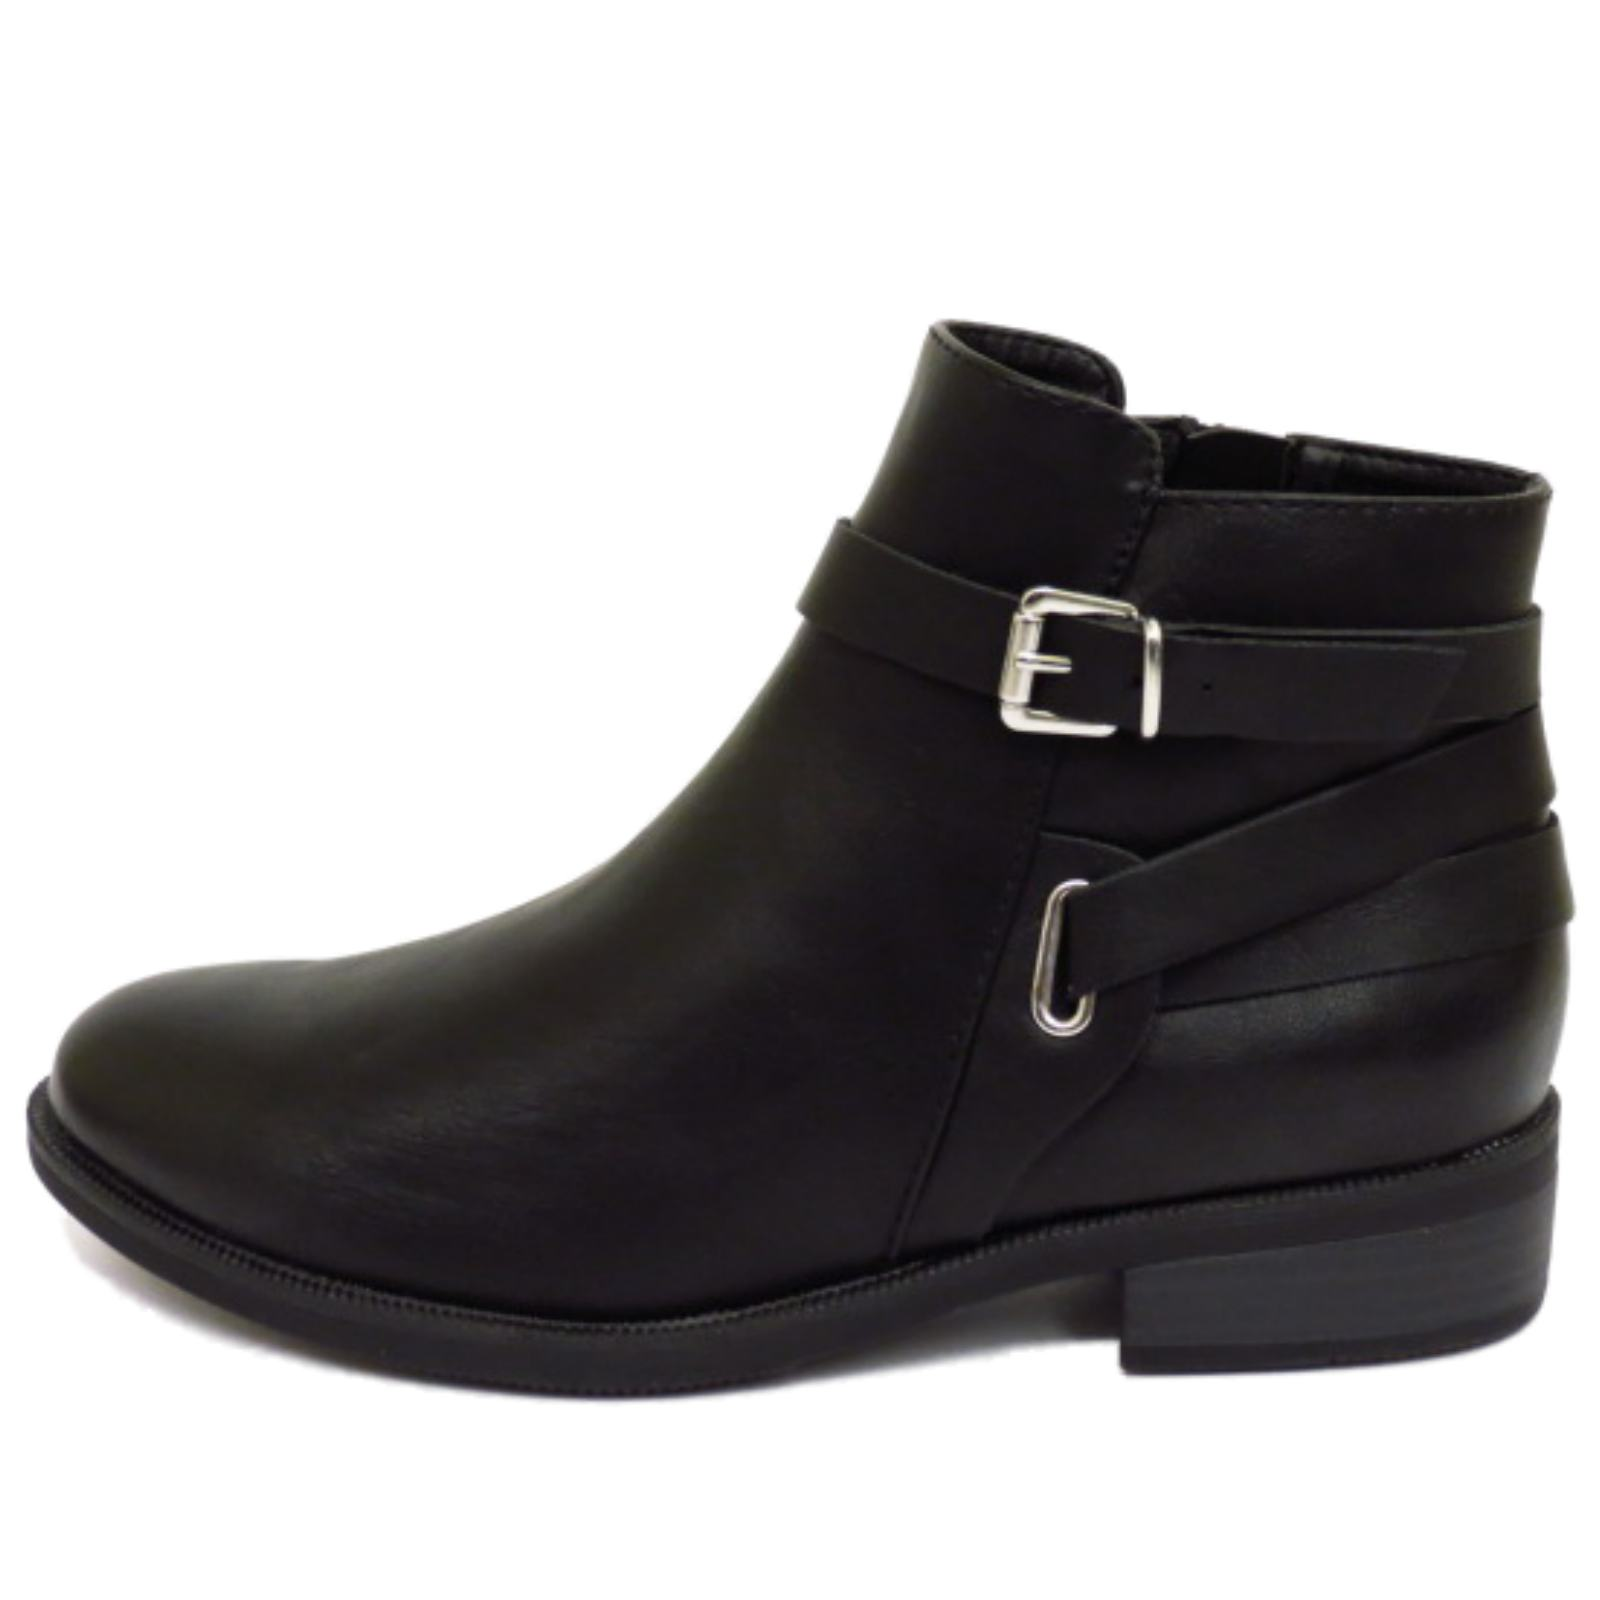 Elegant Marta Jonsson Womens Chelsea Ankle Boots 12472L Womenu0026#39;s Black Boots - Free Returns At Shoes.co.uk